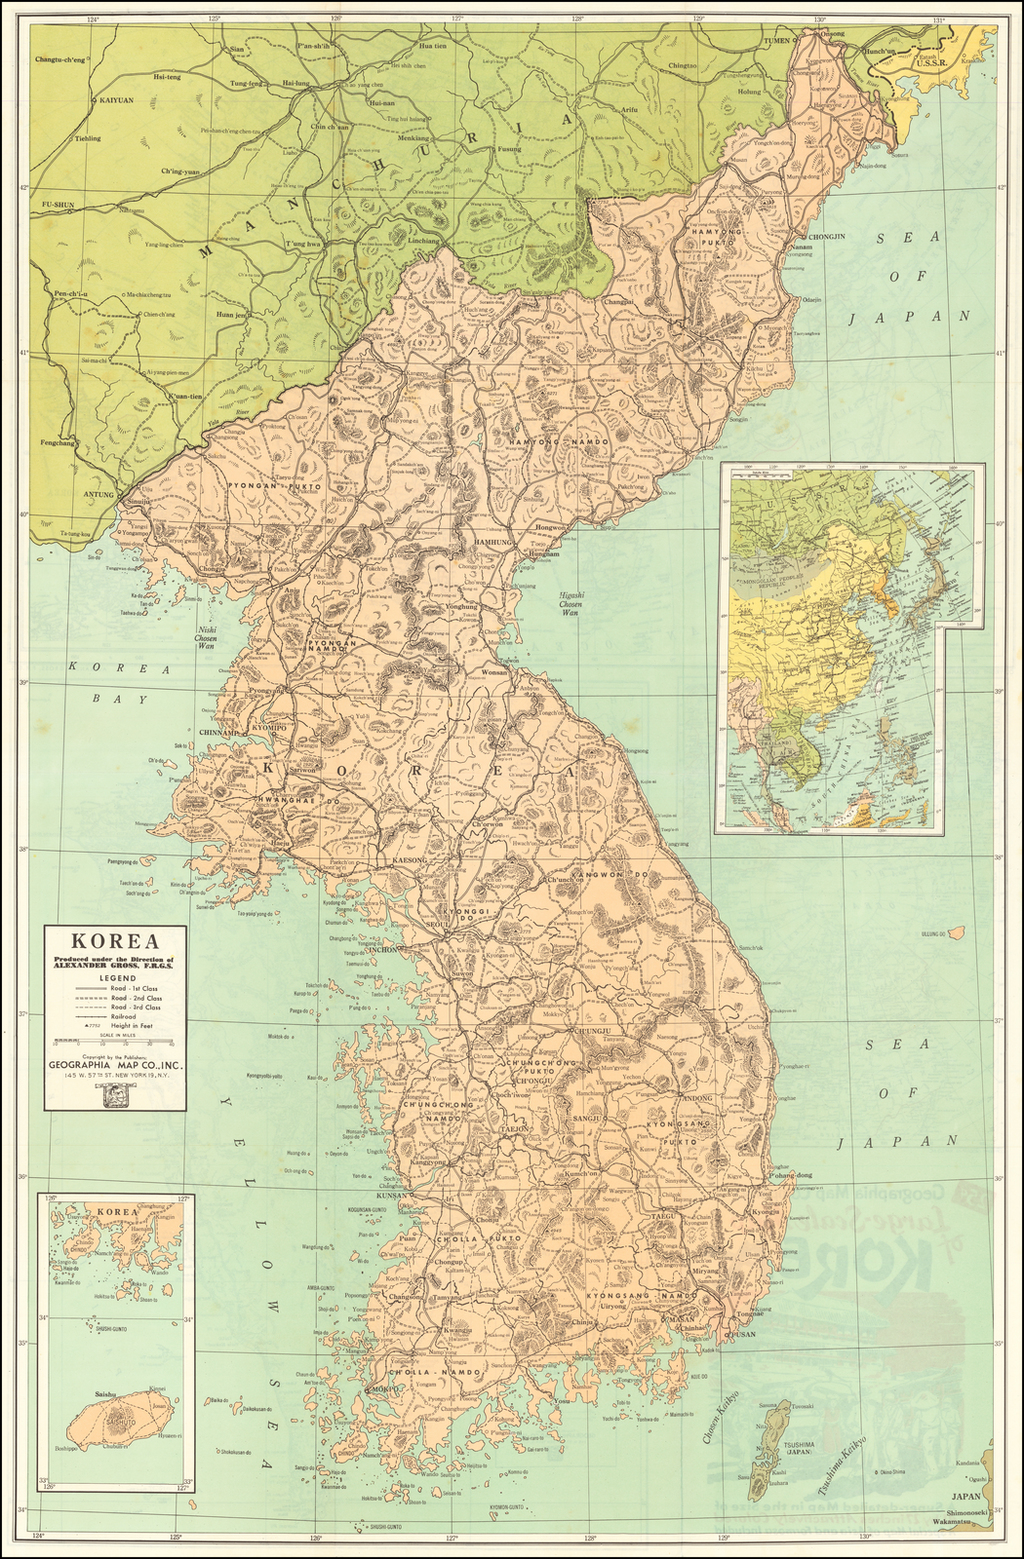 Geographia Map Company's Large Scale Map of Korea By Geographia